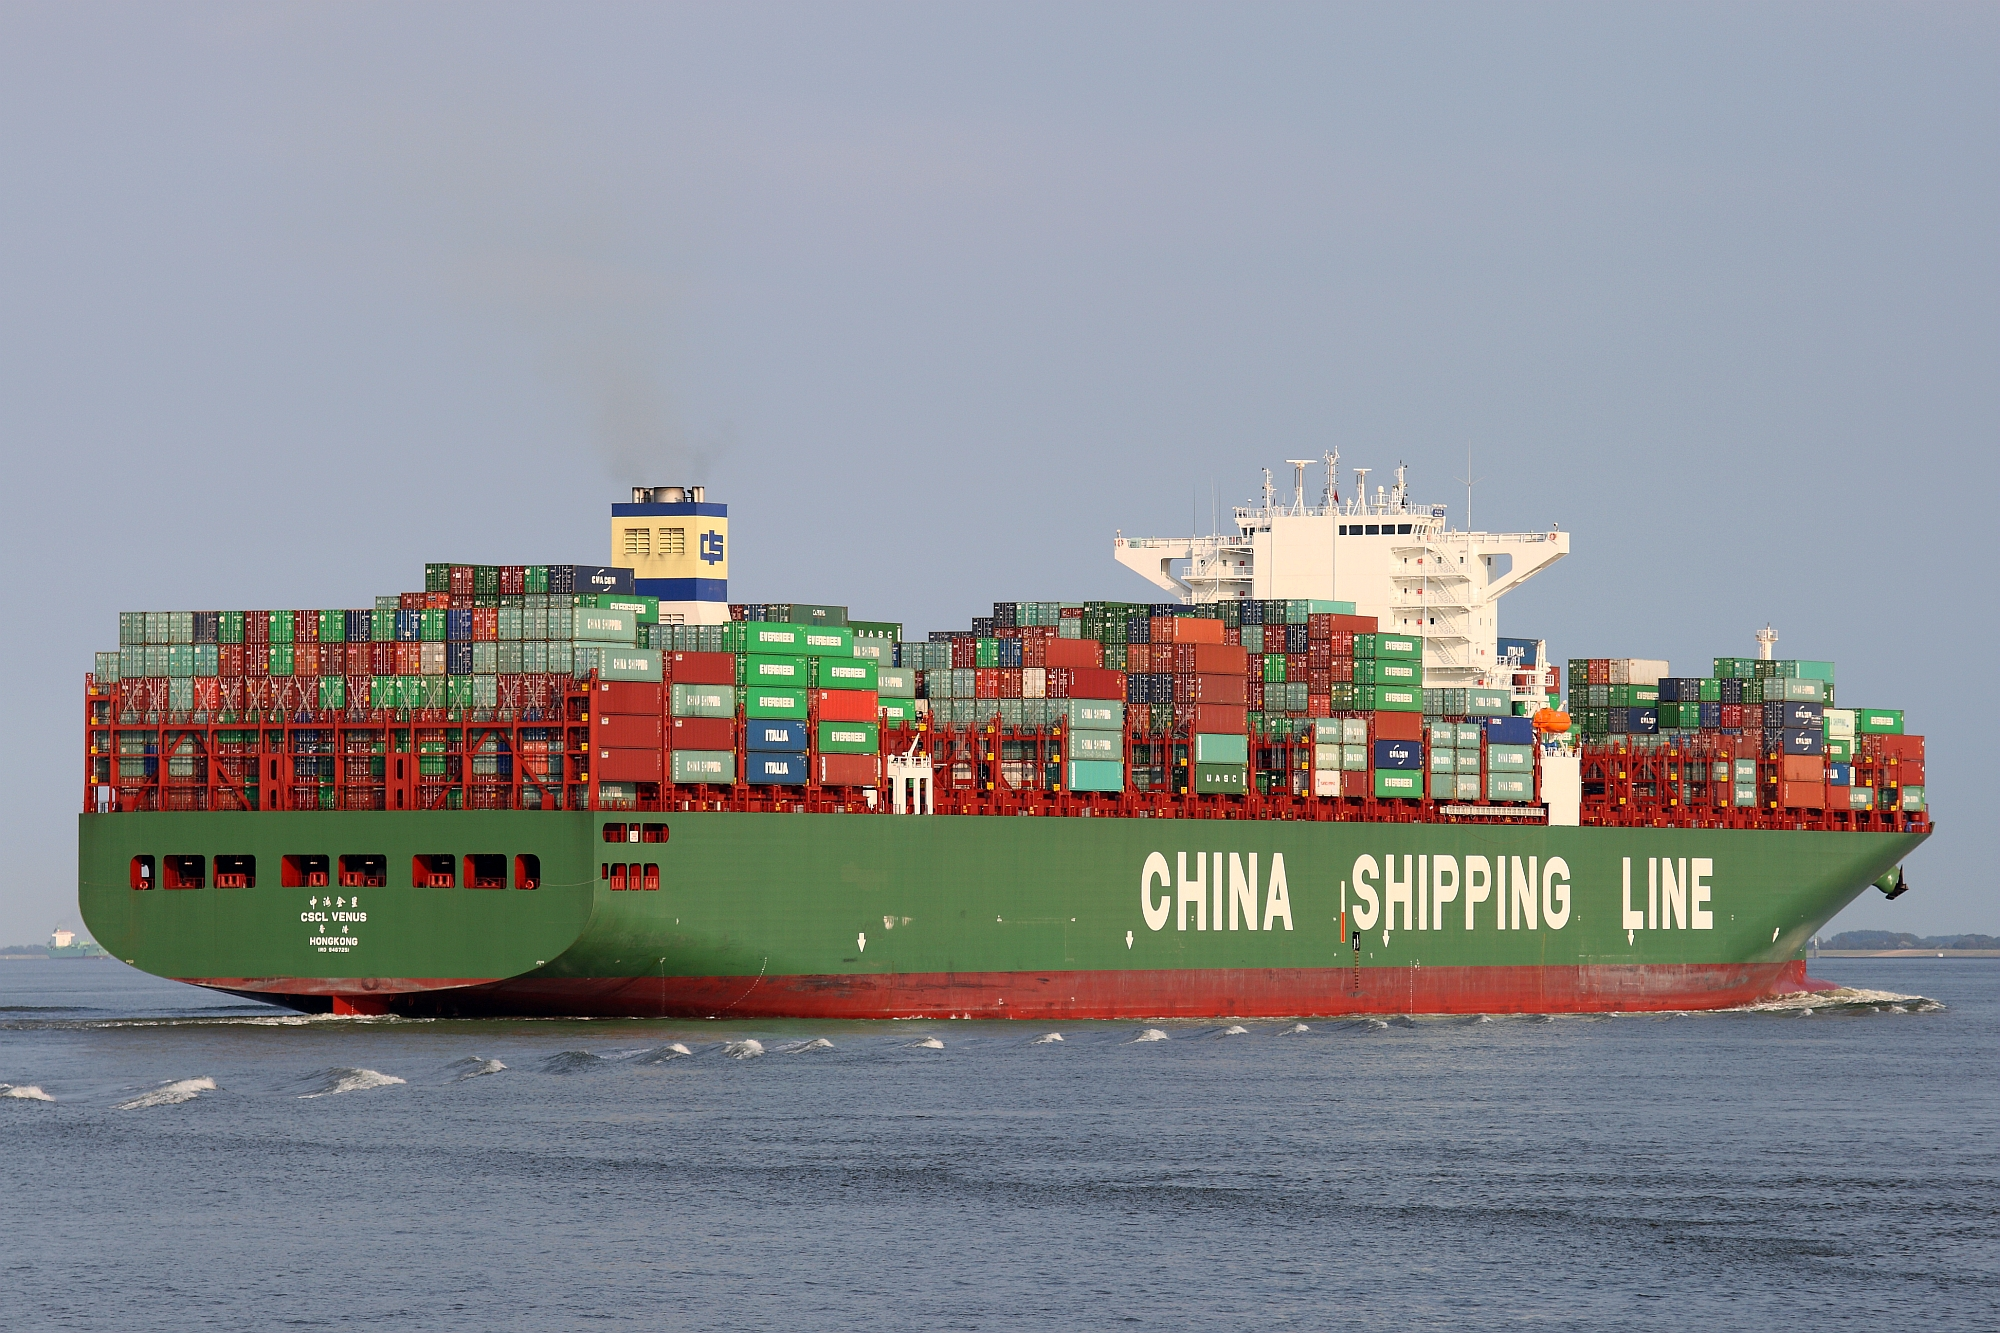 China Shipping Line freighter with containers